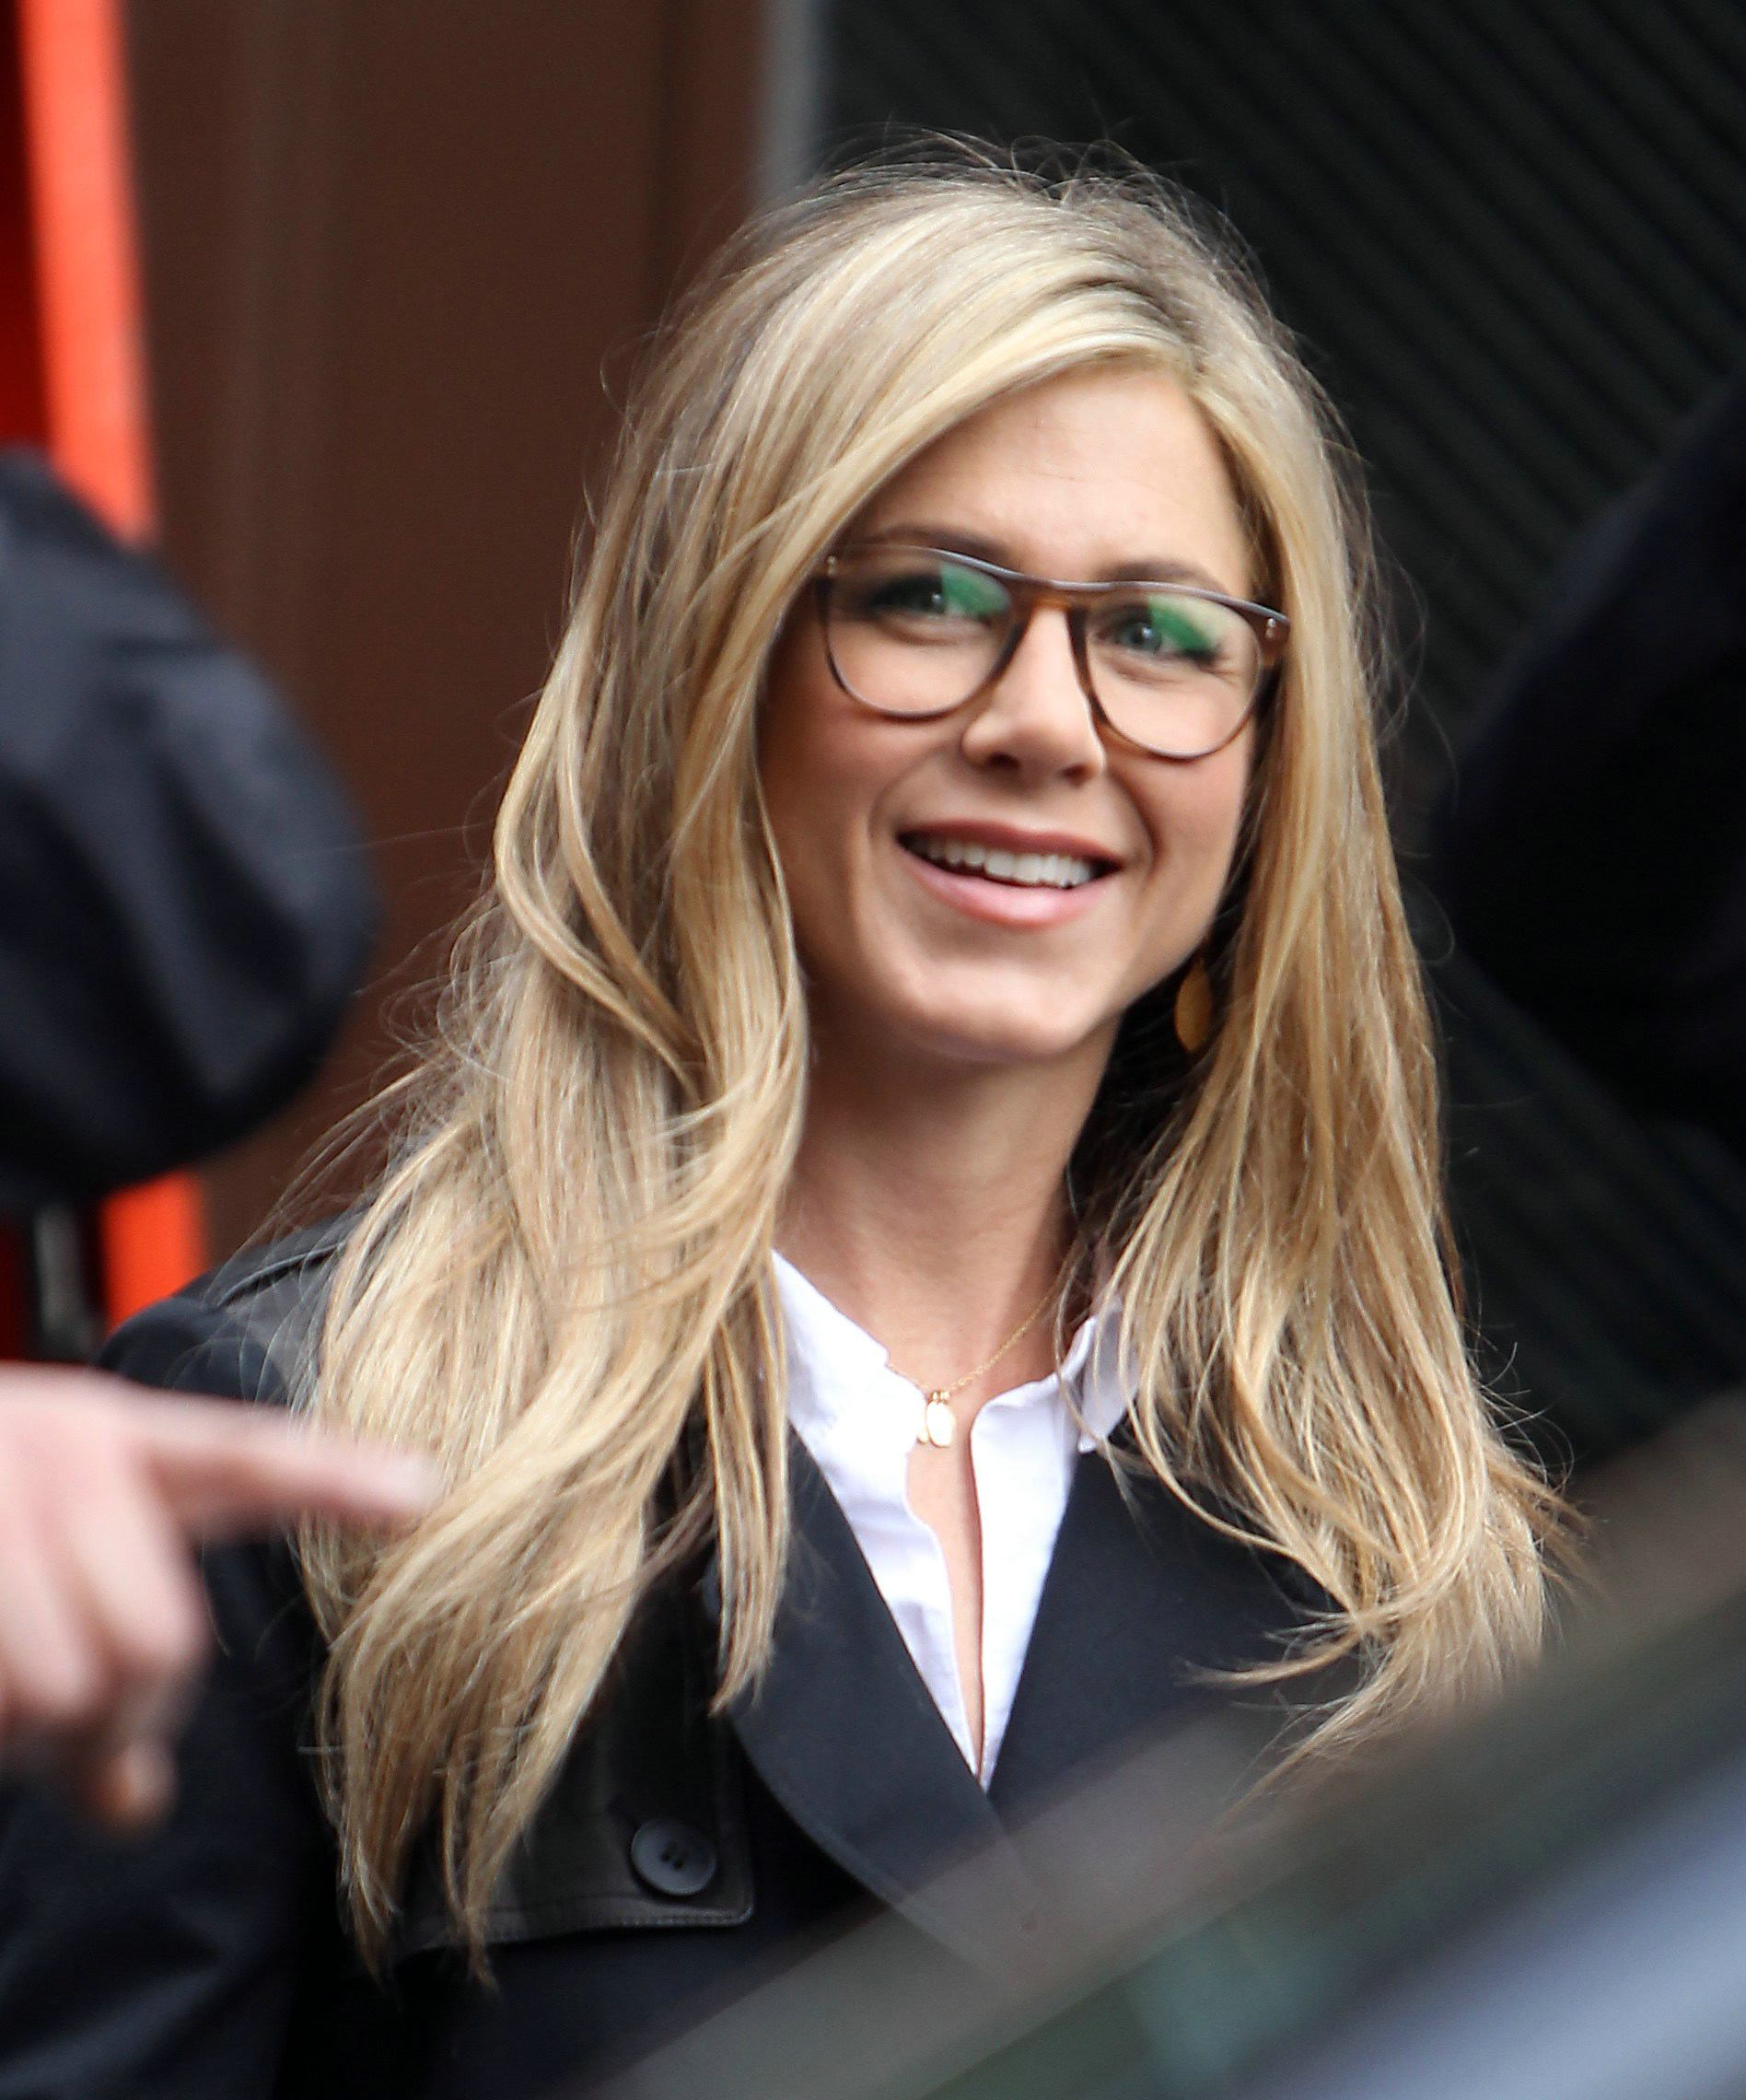 EOH Oculos - Jennifer Aniston